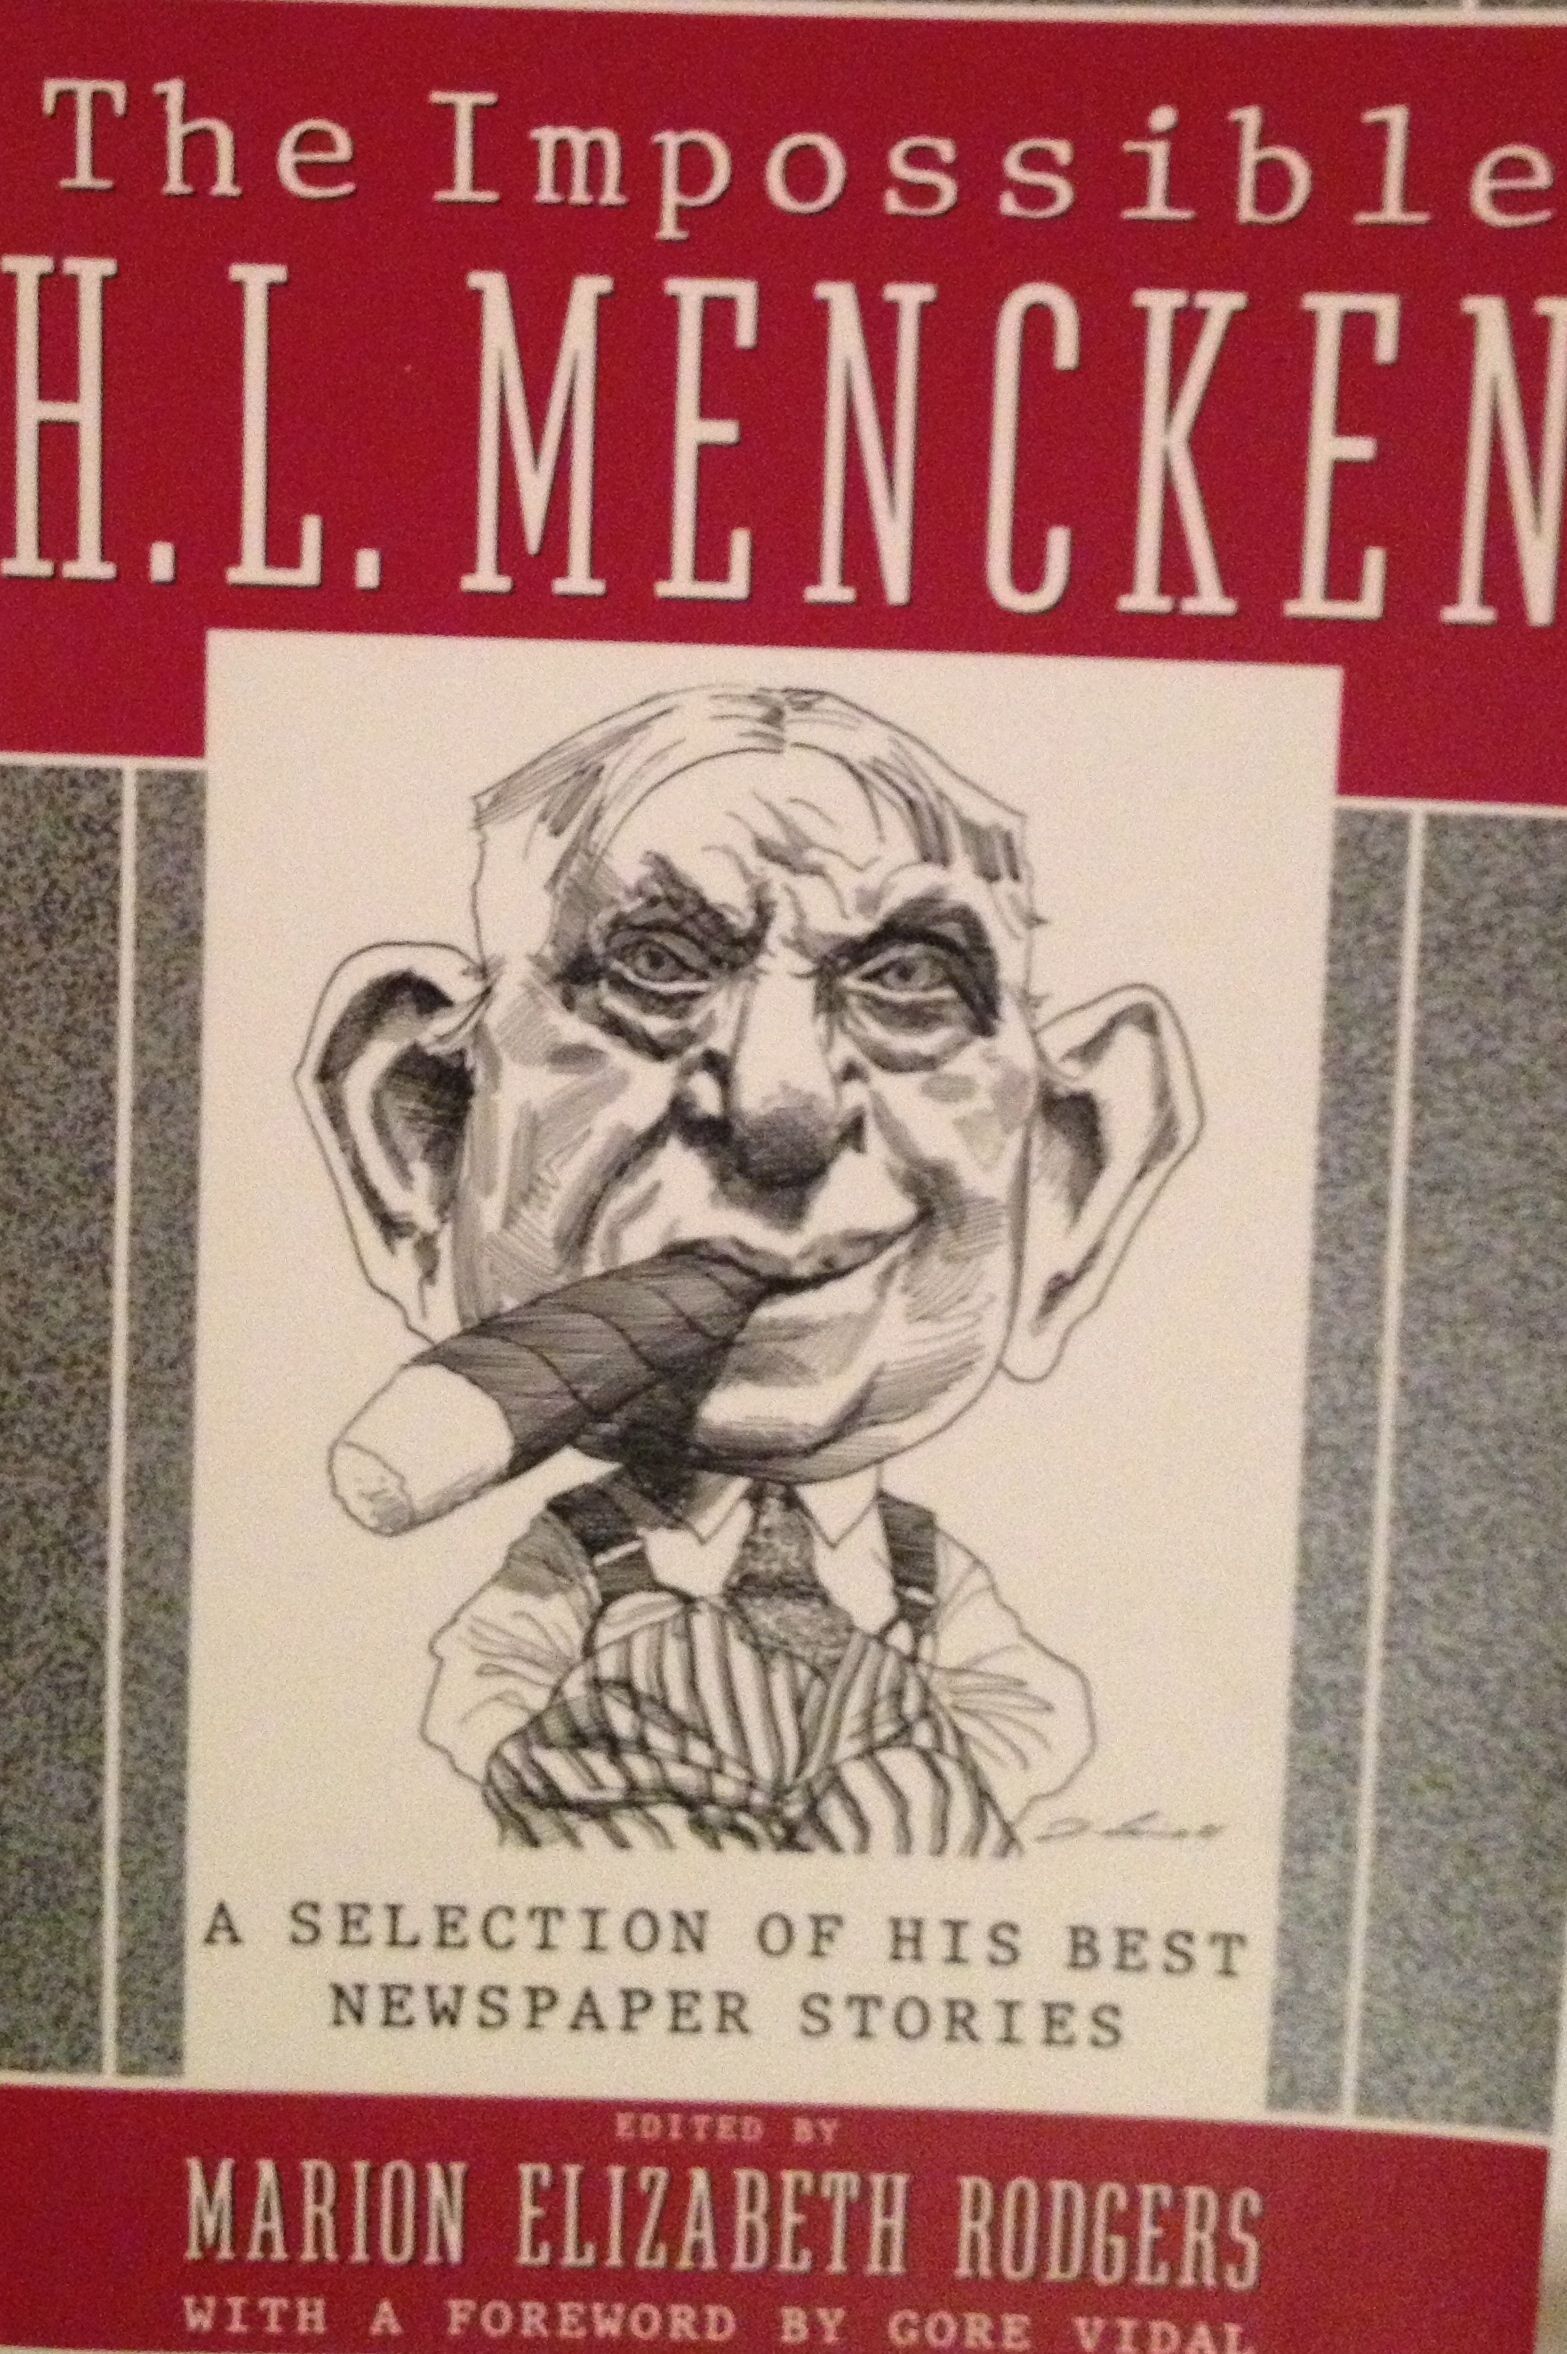 impossible h l mencken the marion elizabeth rodgers impossible h l mencken the marion elizabeth rodgers 9780385262088 com books